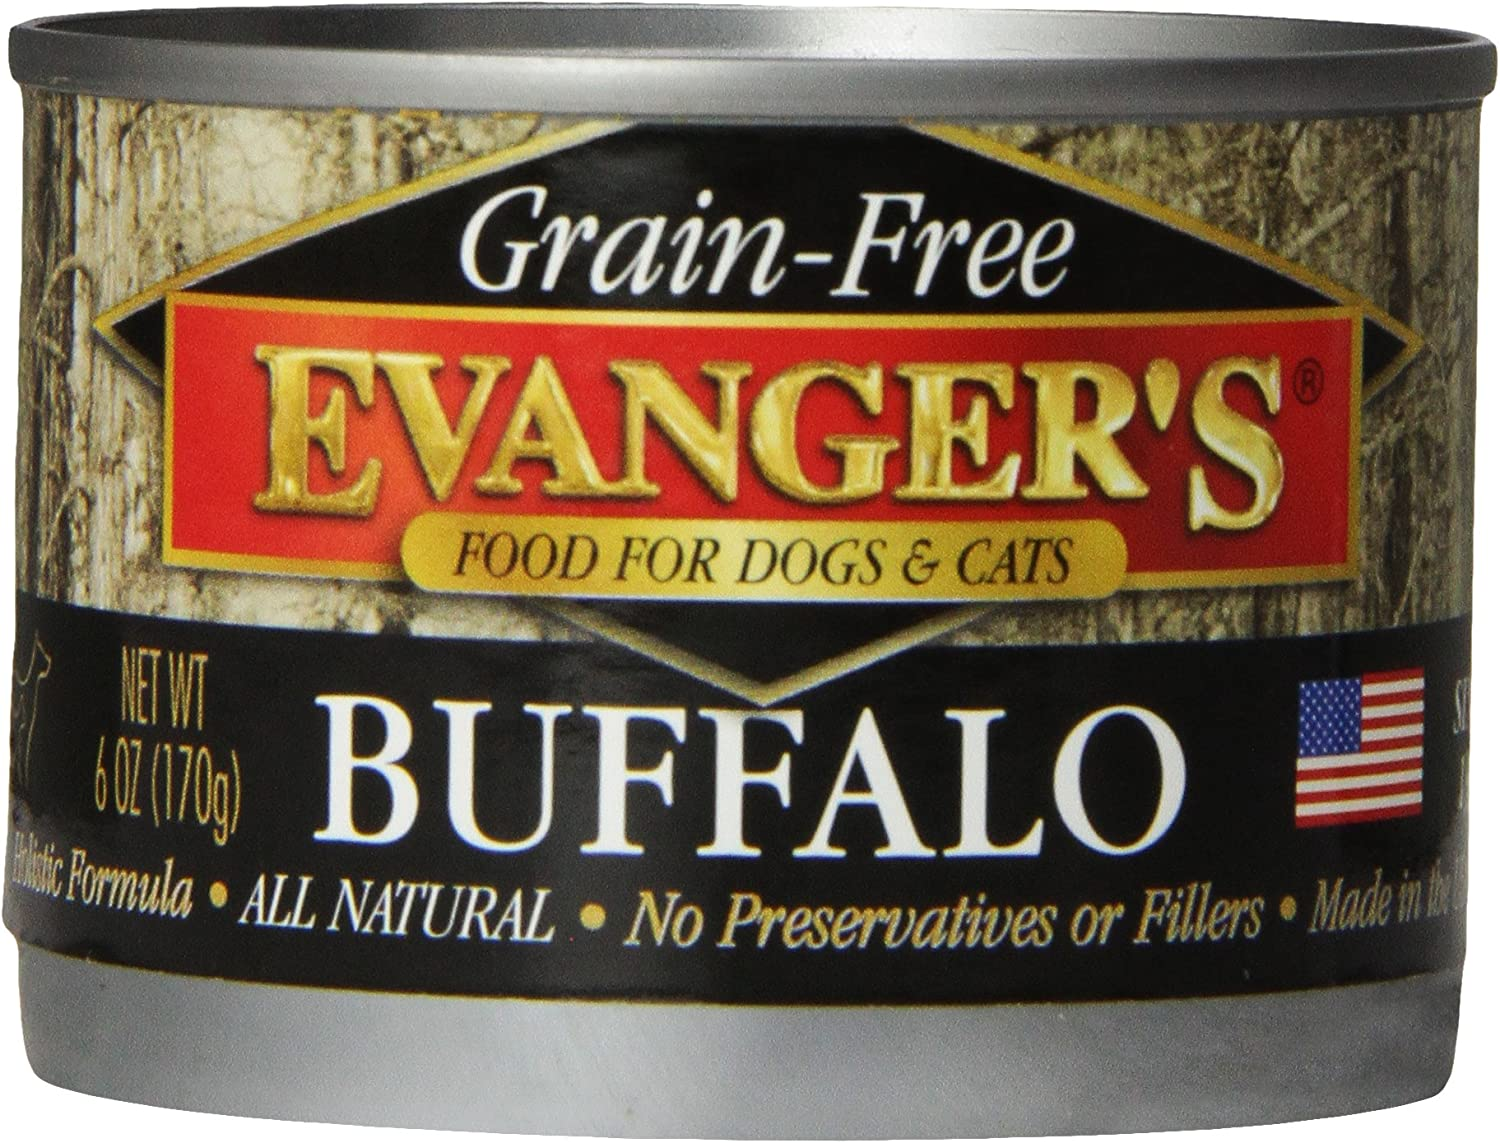 Evanger's Grain-Free Buffalo for Dogs & Cats, 24 x 6 oz cans